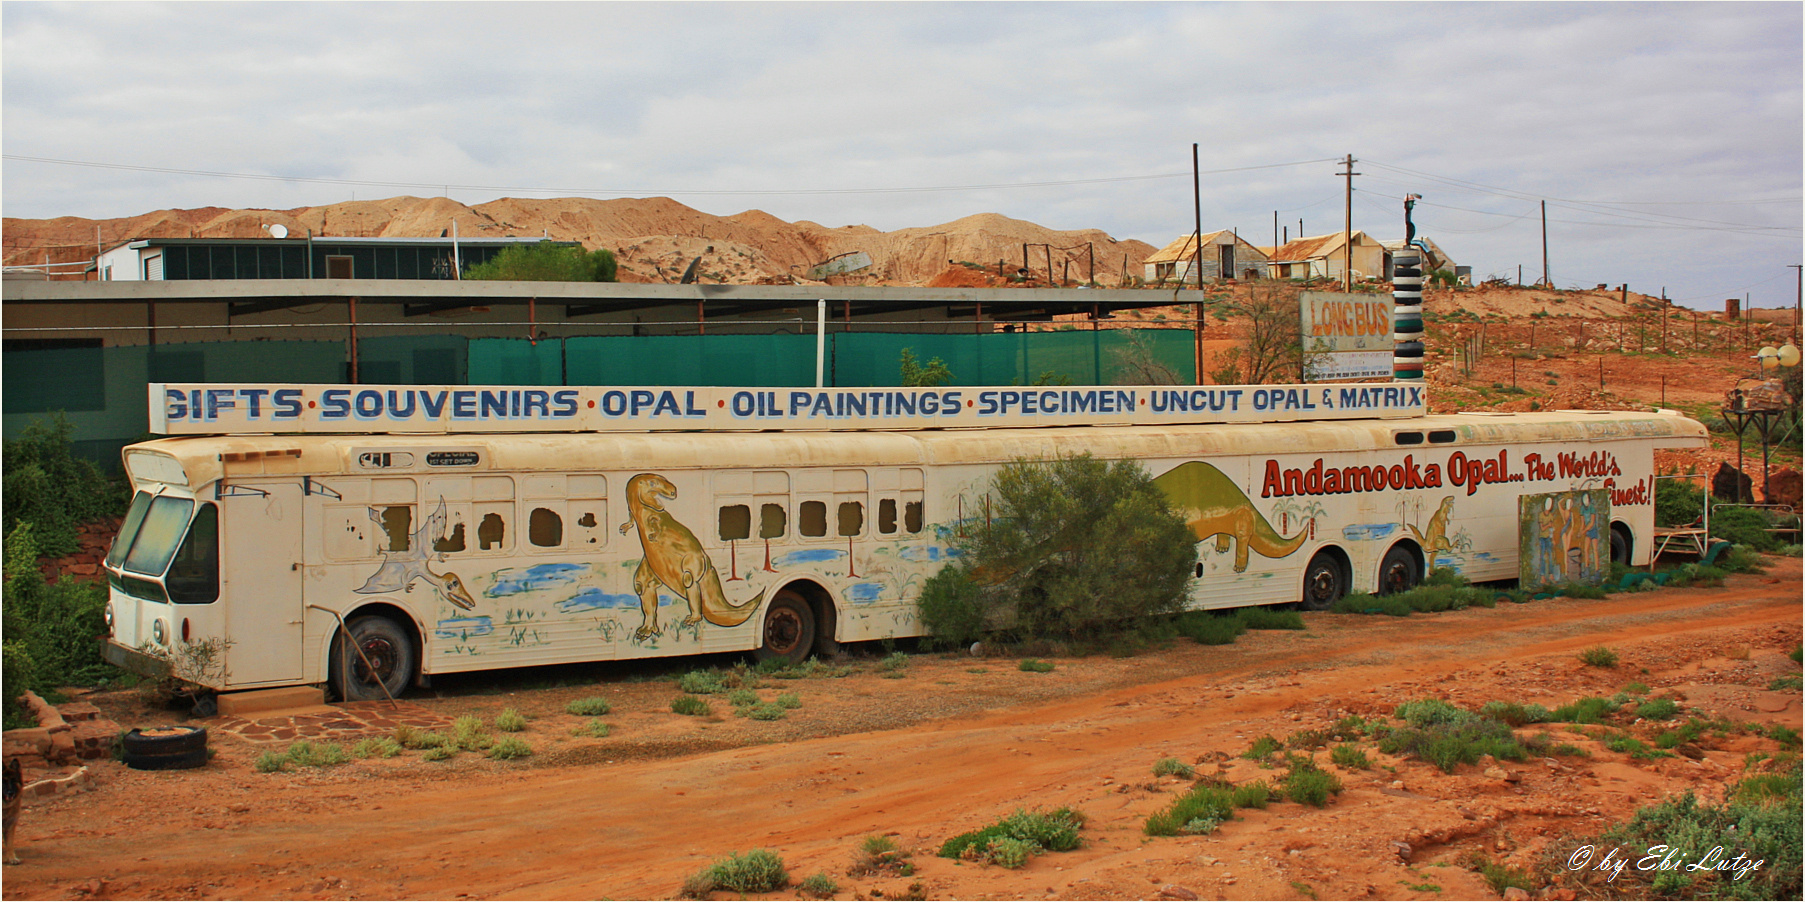 ** Andamooka / the longest Bus in the World **